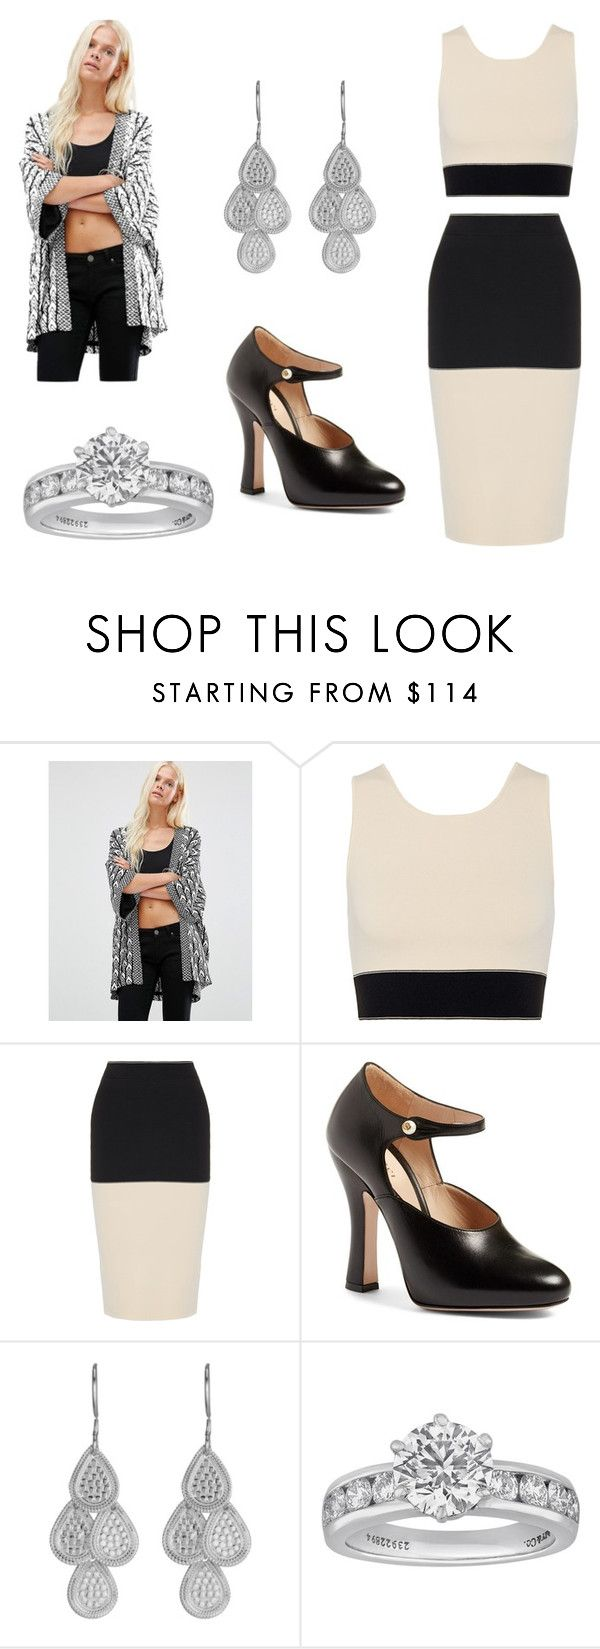 """Tadone"" by soapymarlboro ❤ liked on Polyvore featuring Minimum, rag & bone, Gucci, Anna Beck and Tiffany & Co."